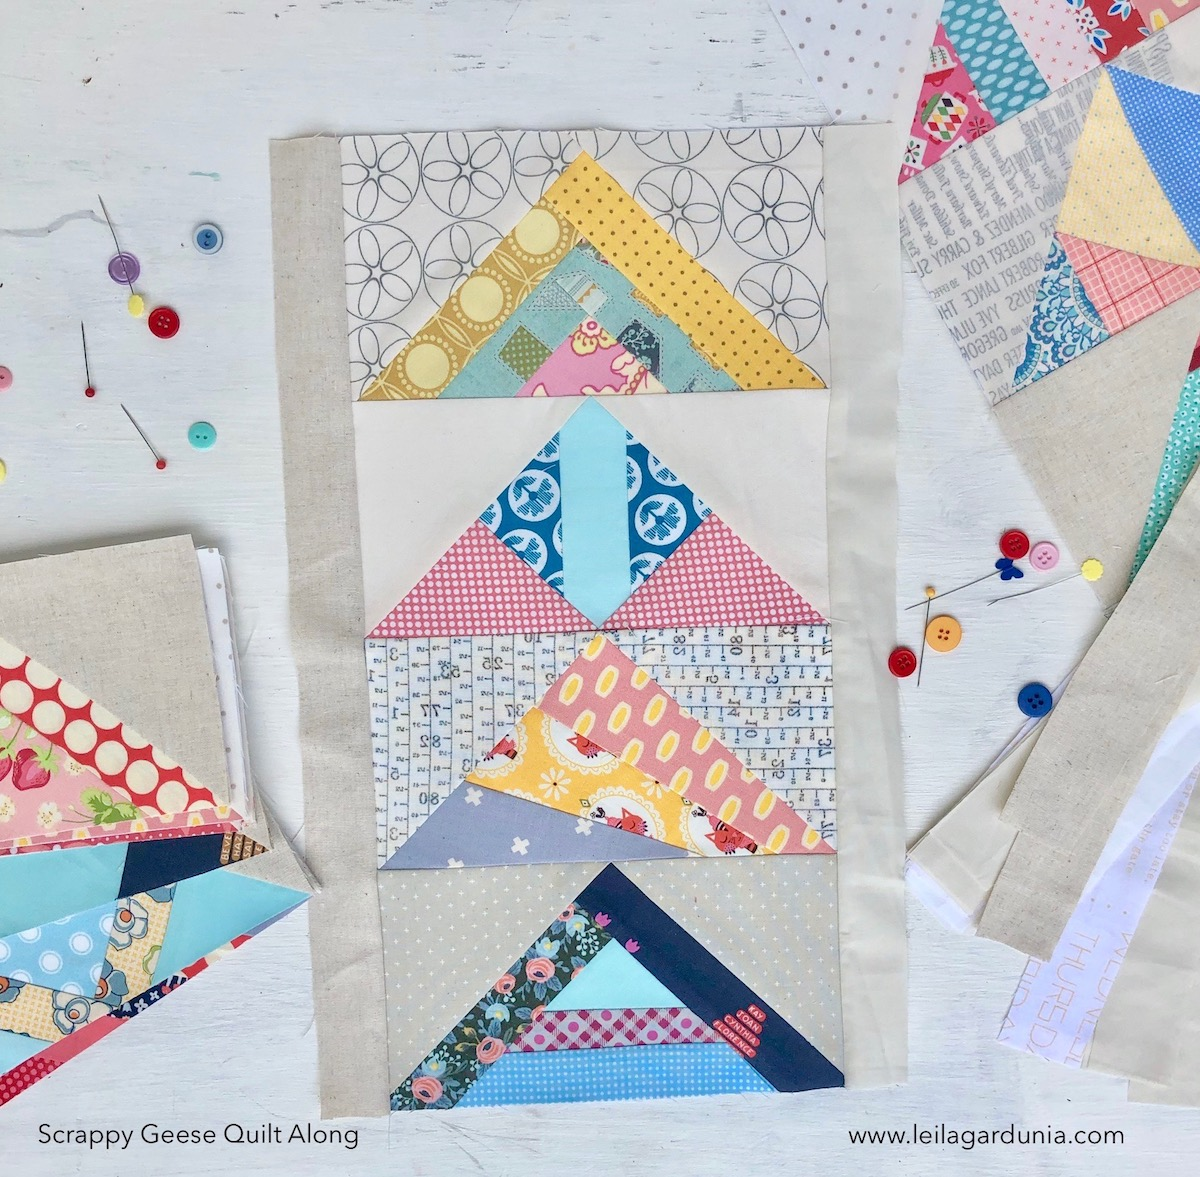 4 x 8 scrappy geese quilt along block.jpg